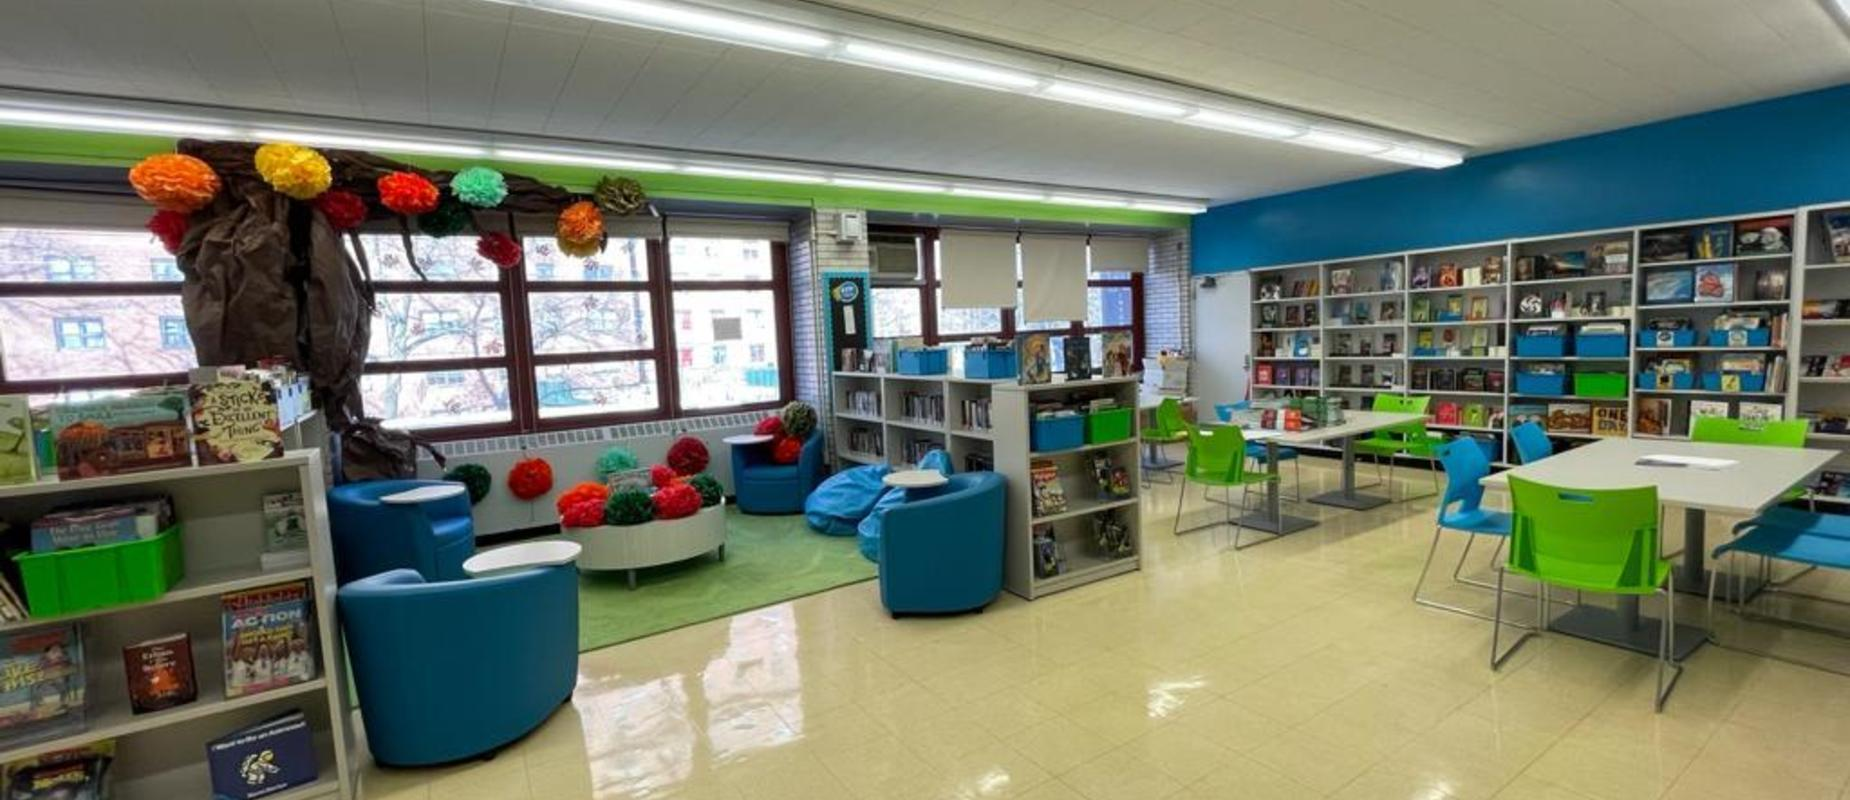 PSMS 29 School Library